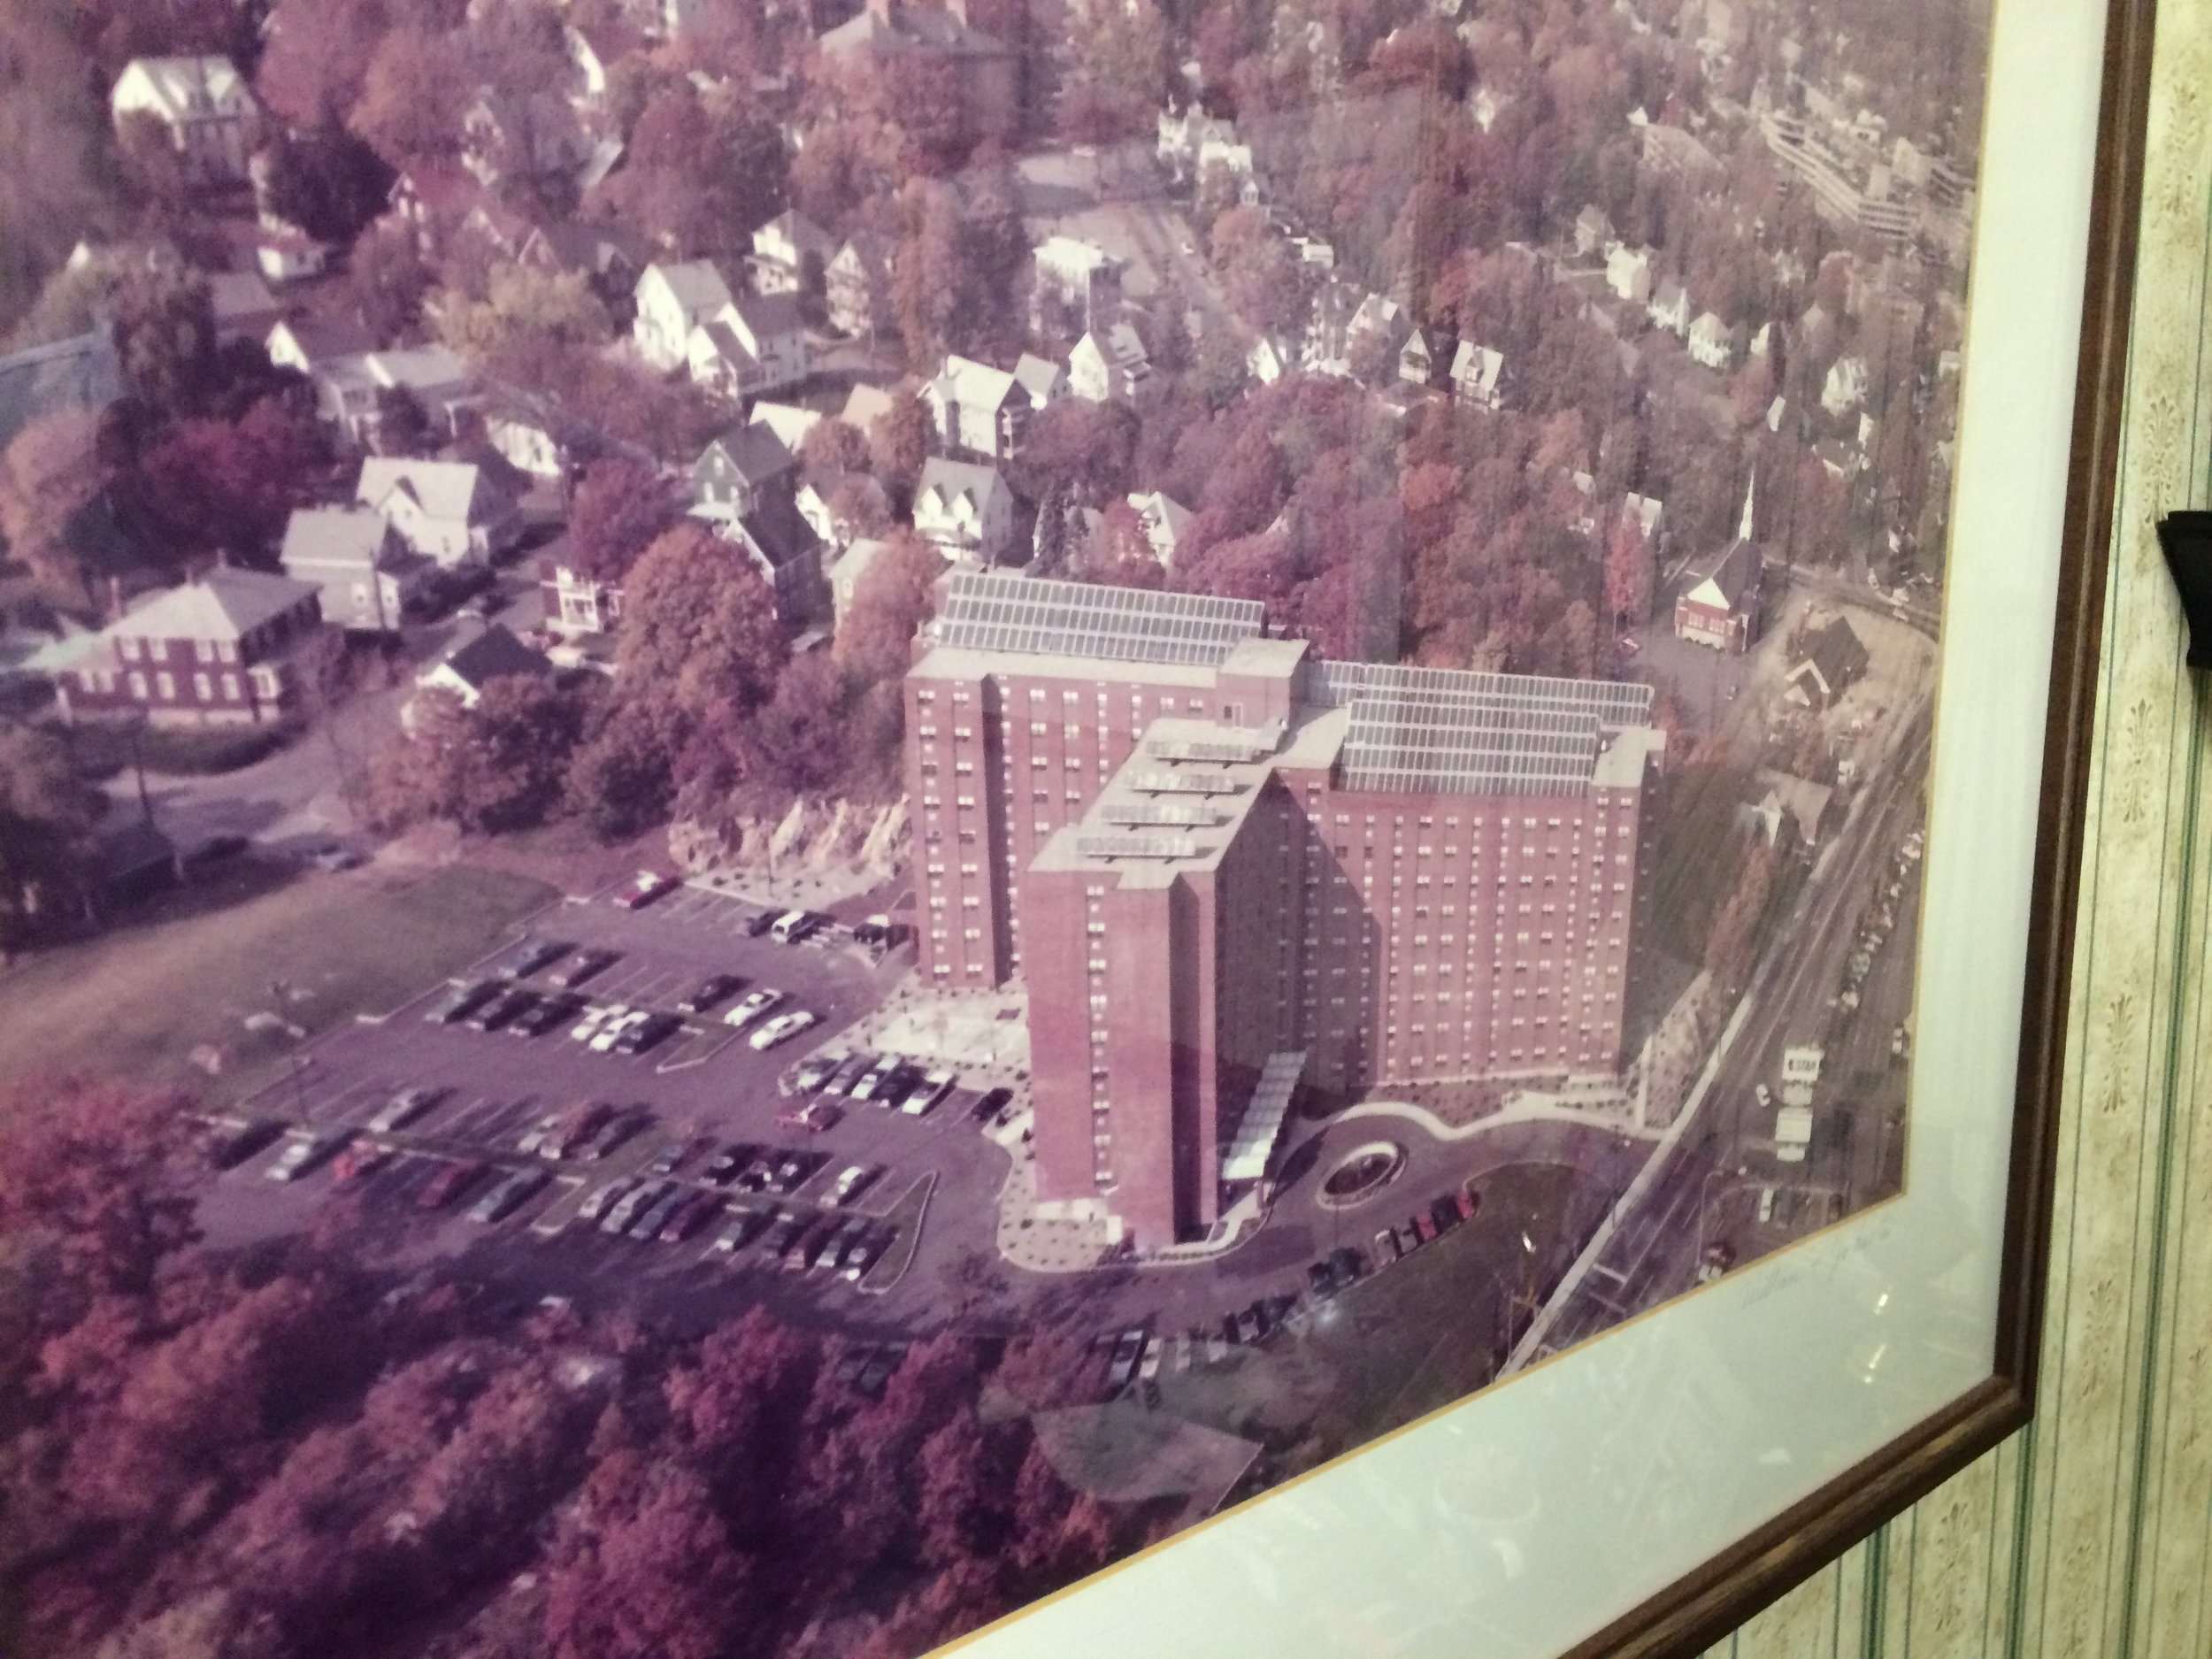 aN EARLY PHOTO OF THE BUILDING, SOLAR PANELS STILL INTACT.